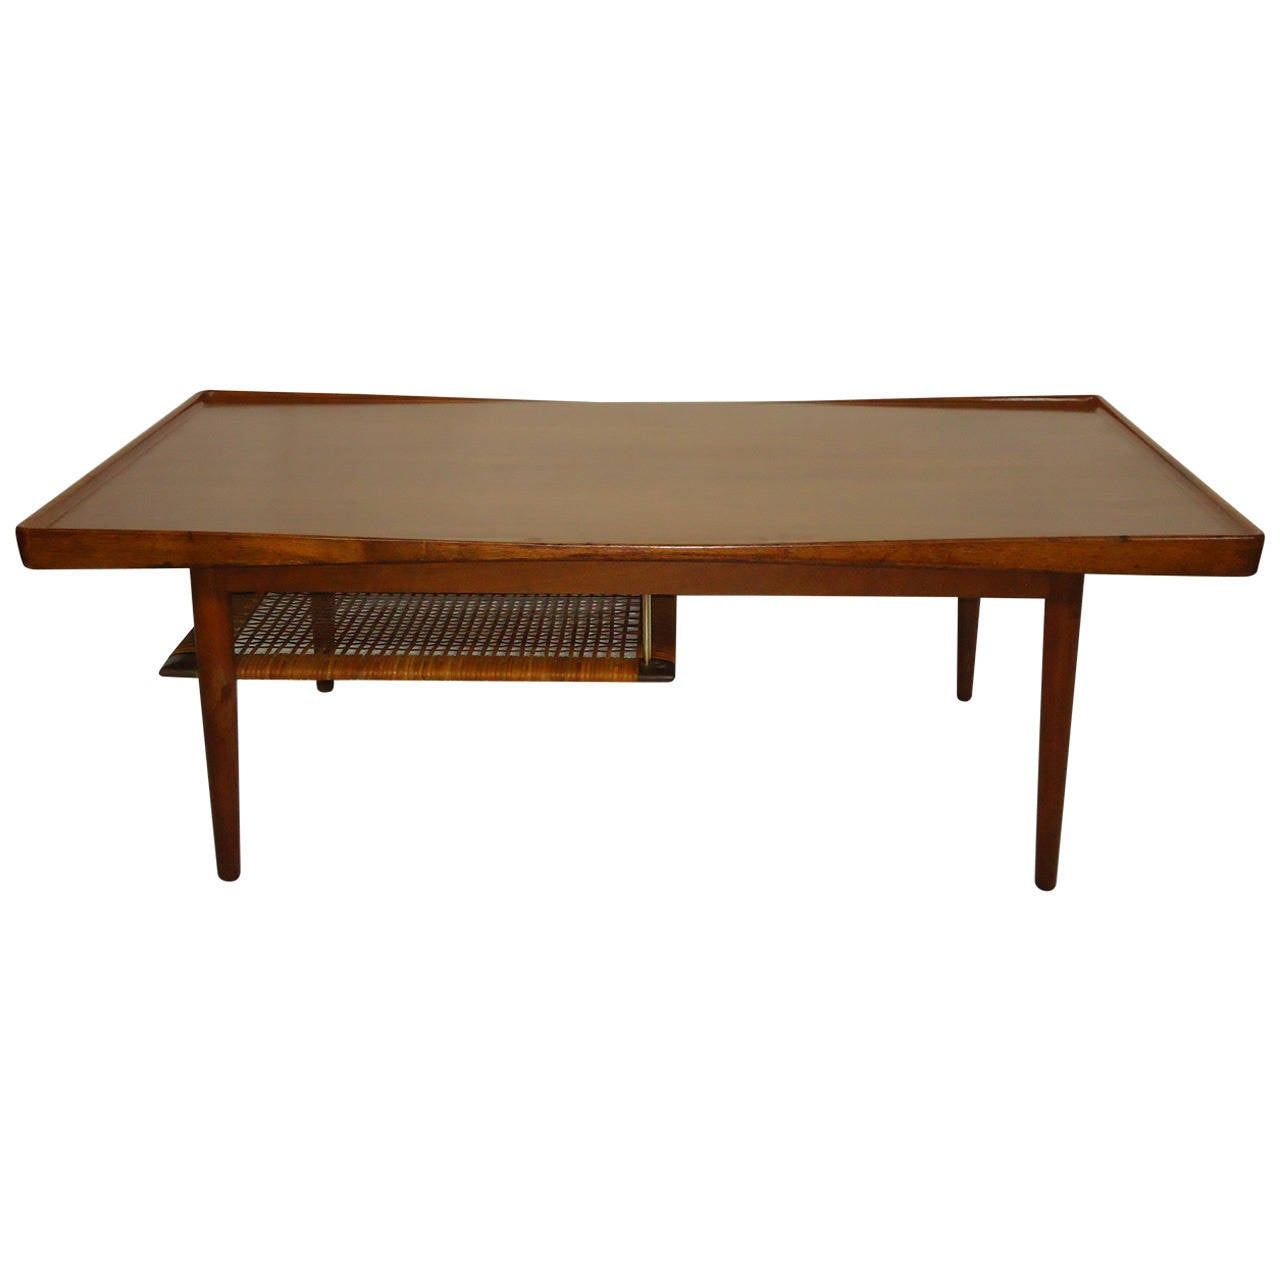 Poul Jensen Selig Coffee Table Teak and Cane Denmark, 1950s